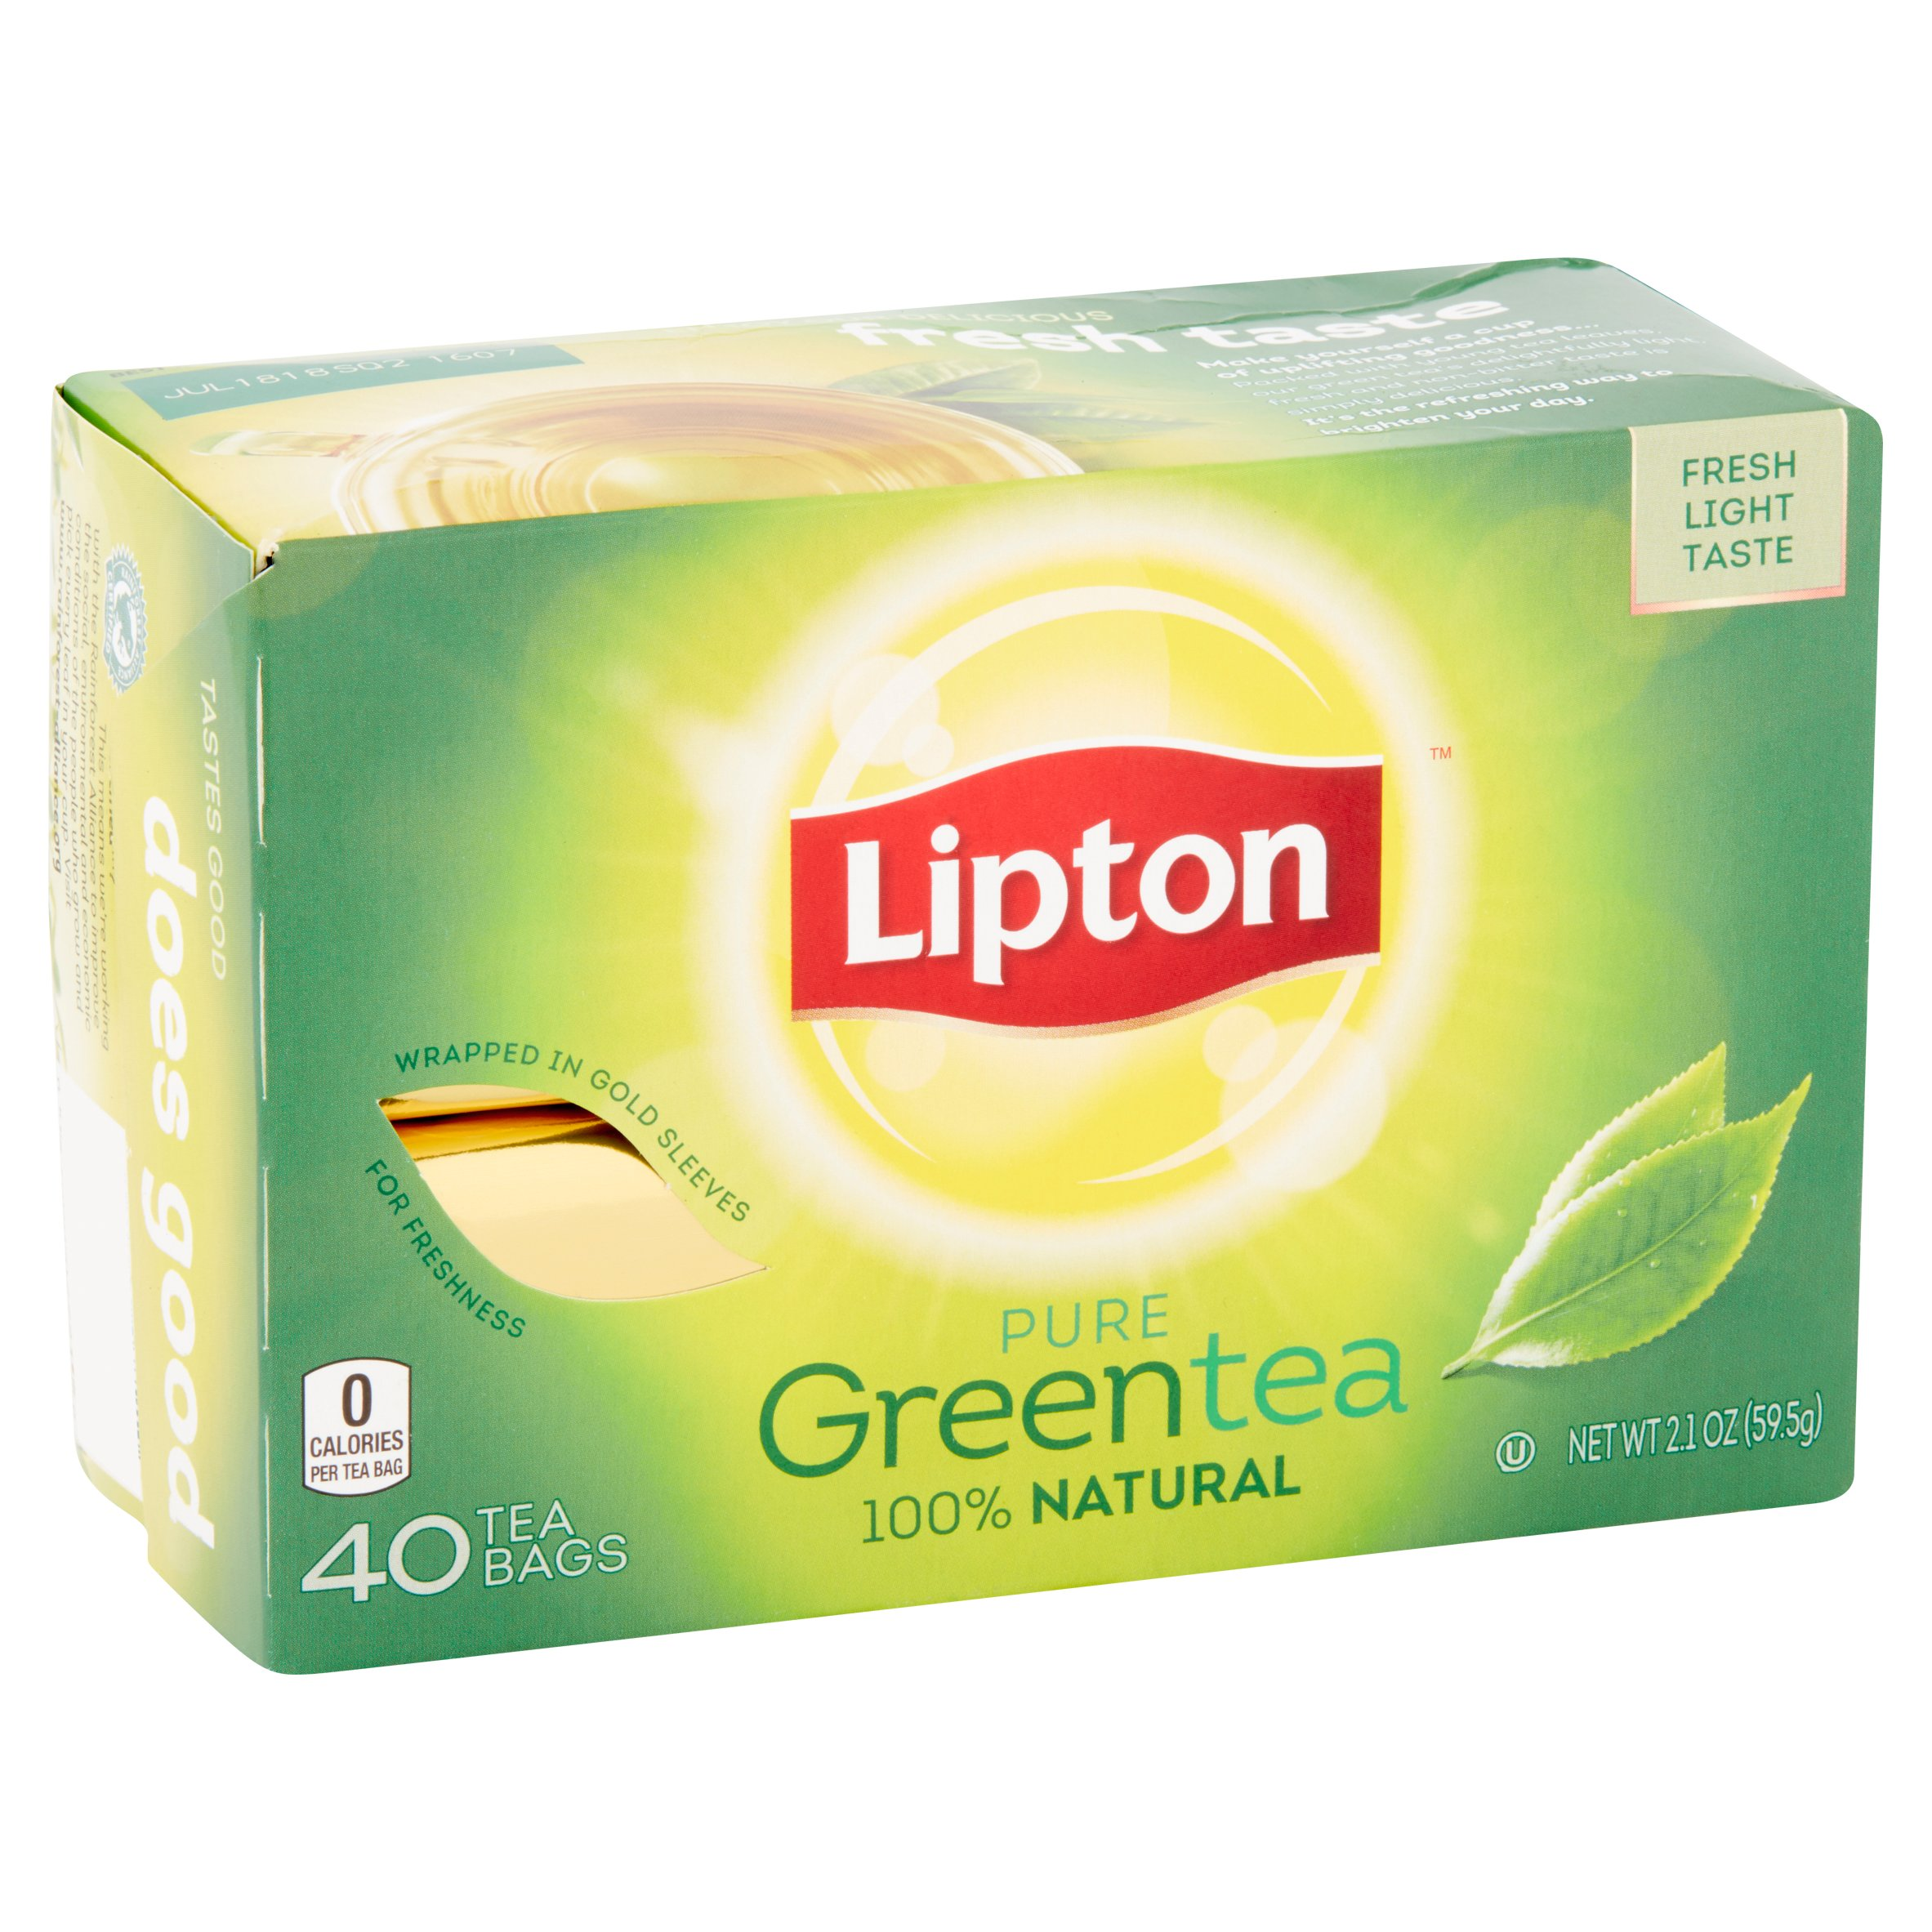 how many calories in a lipton tea bag